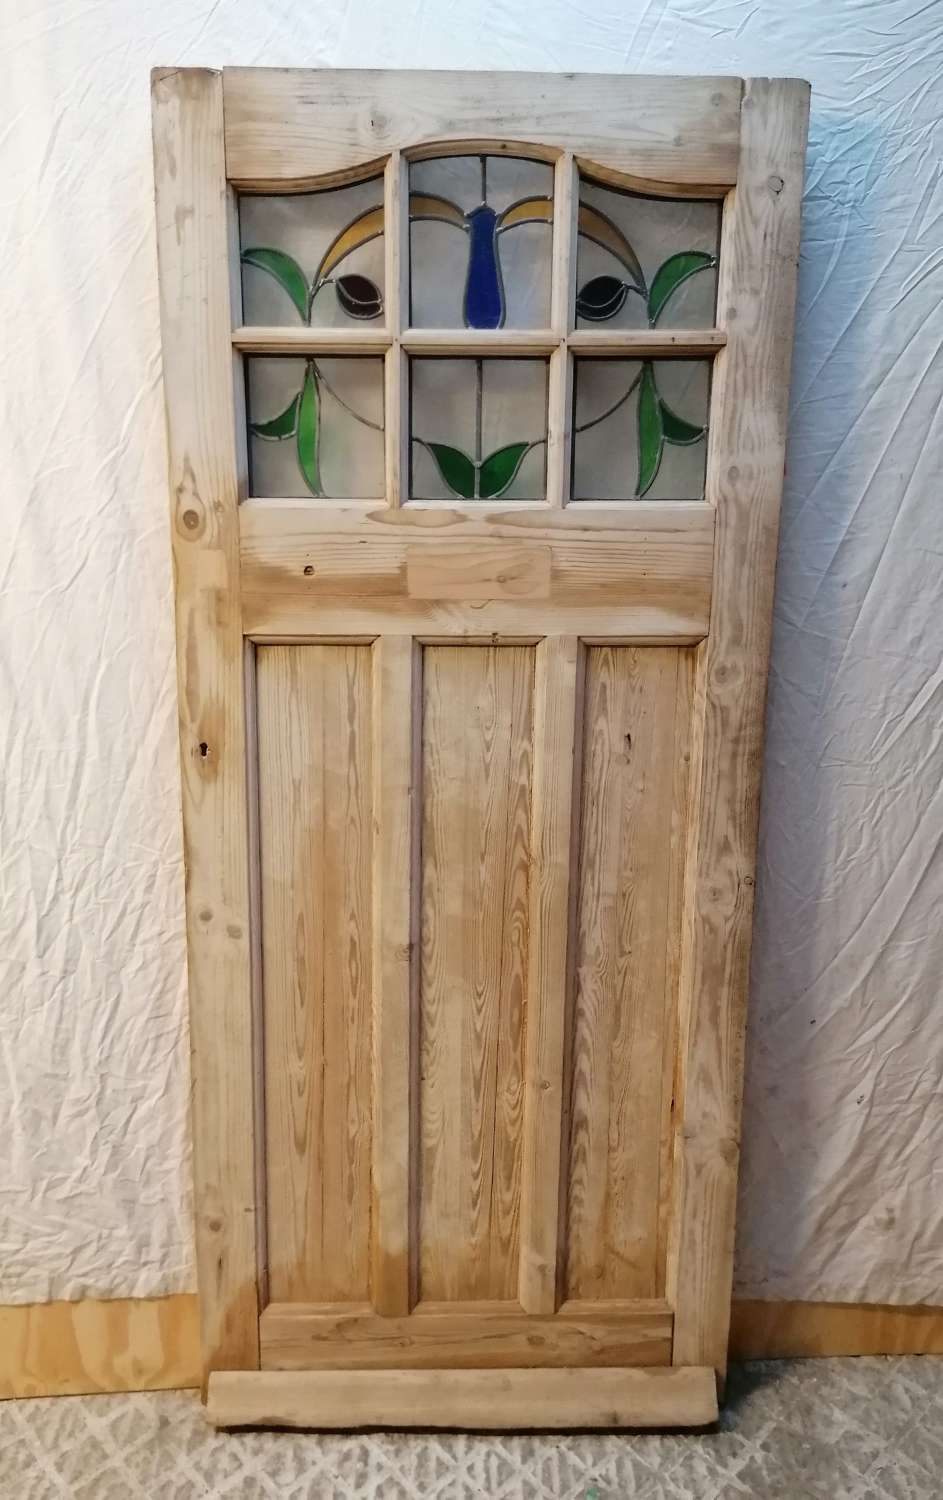 DI0735 AN EDWARDIAN PINE DOOR WITH STAINED GLASS FOR INTERNAL USE